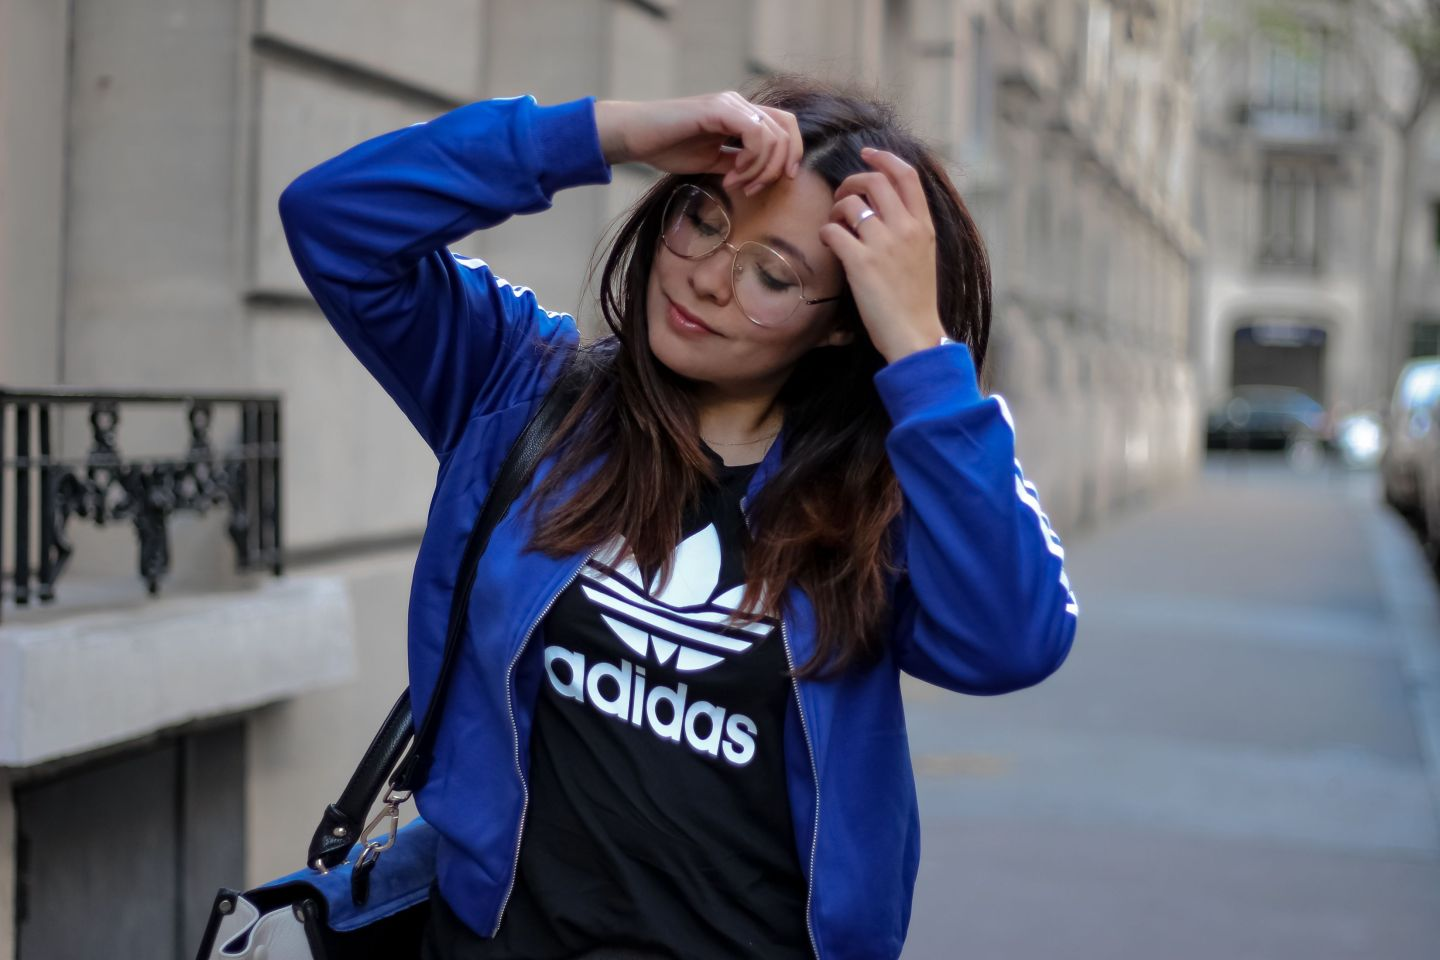 gilet sport femme, gilet bandes, adidas, t-shirt adidas, blog mode, the green ananas, sac inspi céline, shein, lunettes oversize, asos, lunettes asos, jupe droite, puma heart, glasses